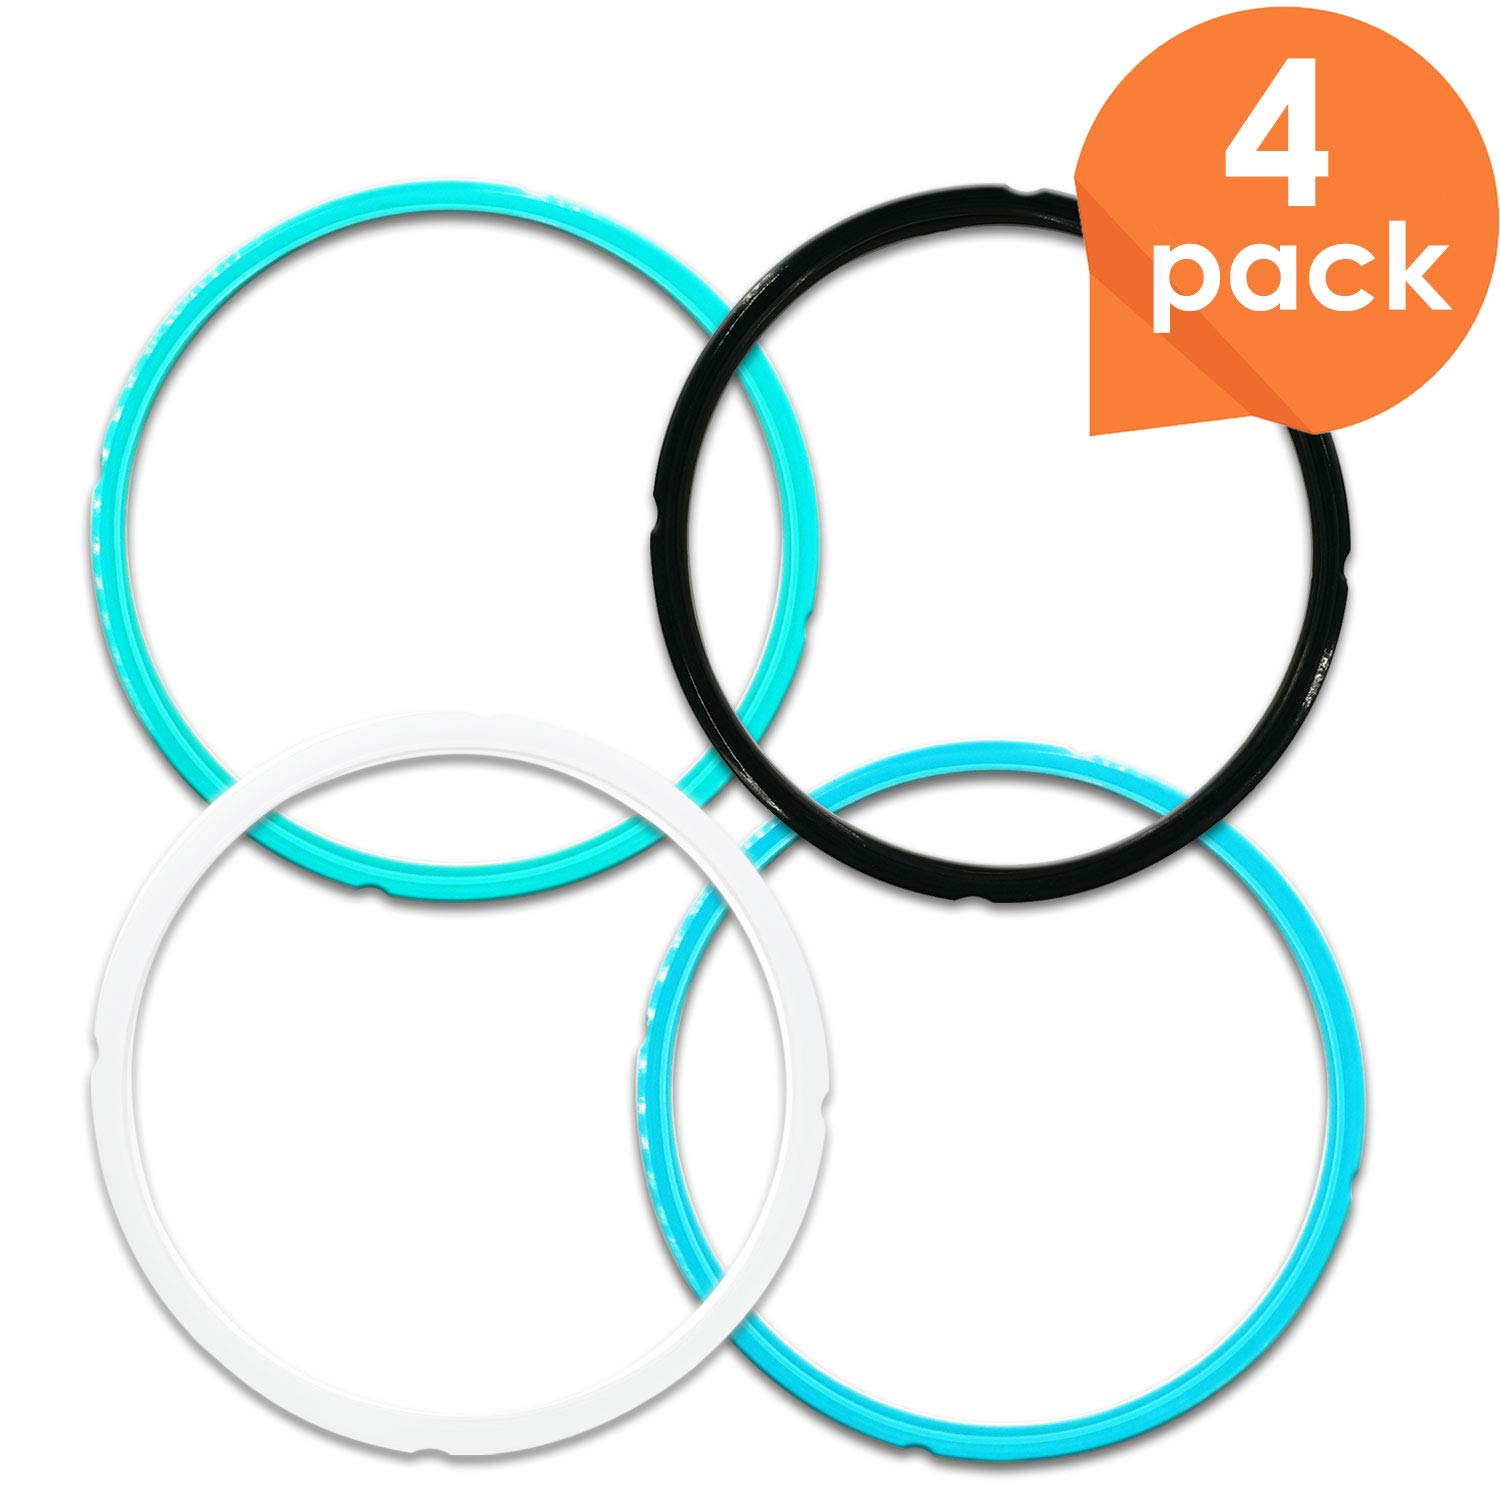 Upgraded Version Silicone Sealing Ring for Instant Pot Accessories, Fits 5/6 Qt Pressure Cooker Models, Perfect Instapot Sealing Ring Replacement to Separate Your Flavors, Easy to Clean -4 pack